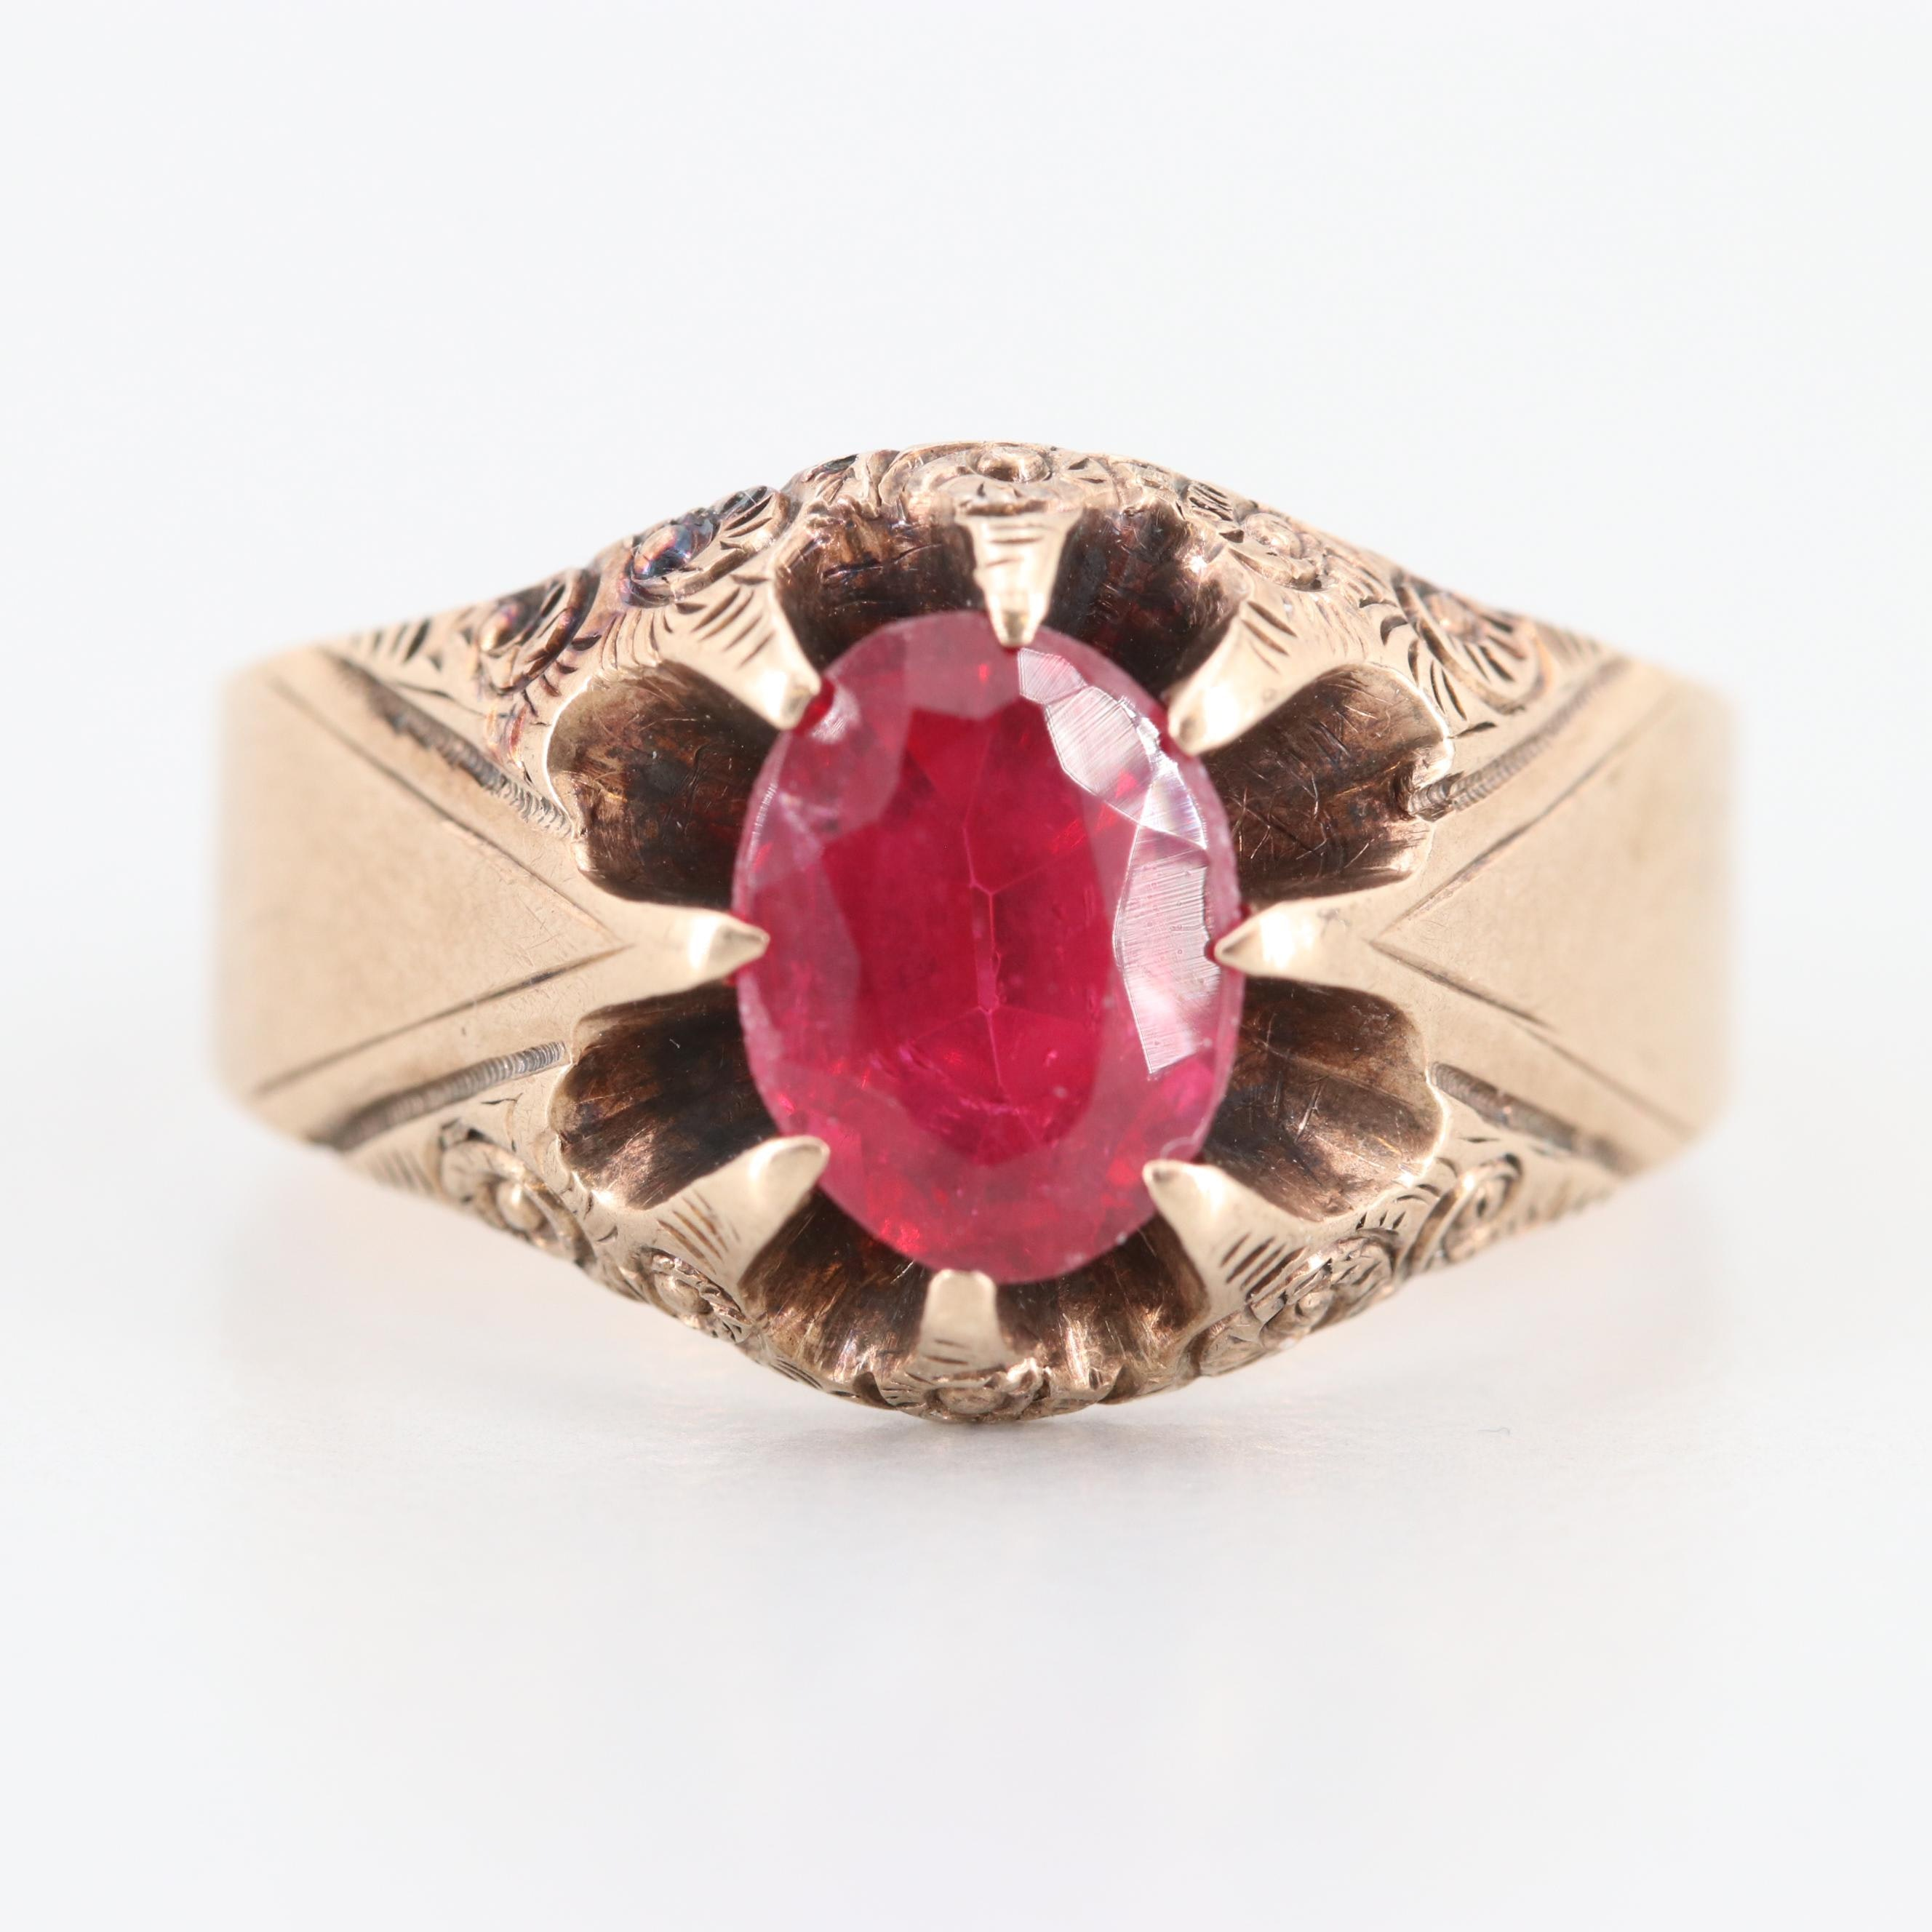 Victorian 10K Yellow Gold Garnet and Glass Doublet Belcher Ring